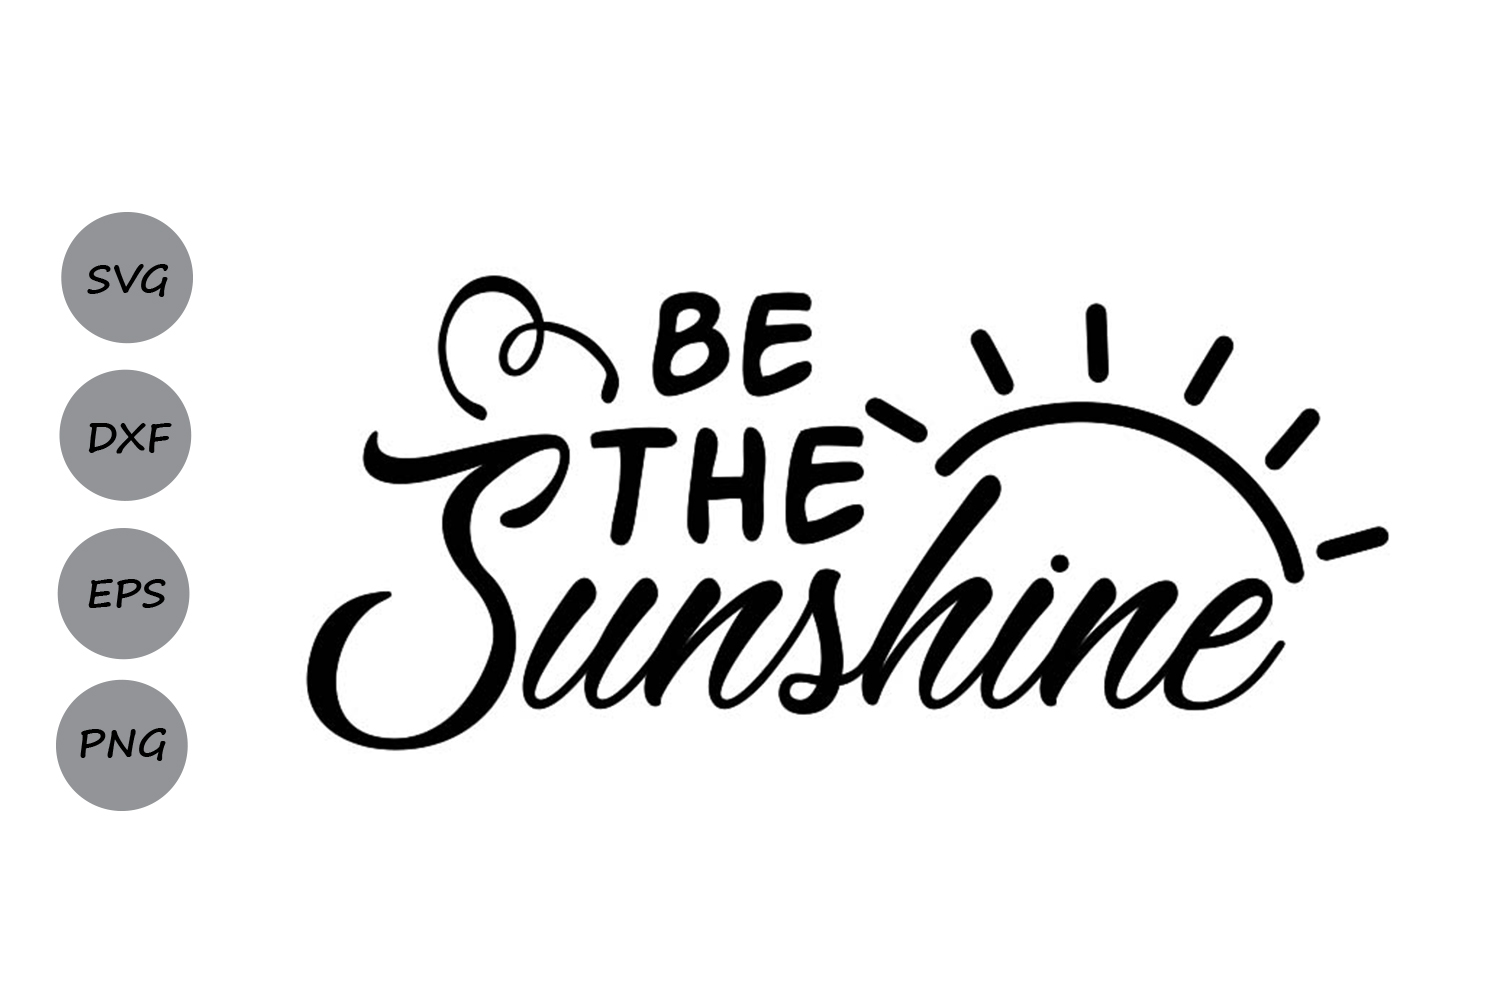 Download Free Be The Sunshine Svg Grafik Von Cosmosfineart Creative Fabrica for Cricut Explore, Silhouette and other cutting machines.